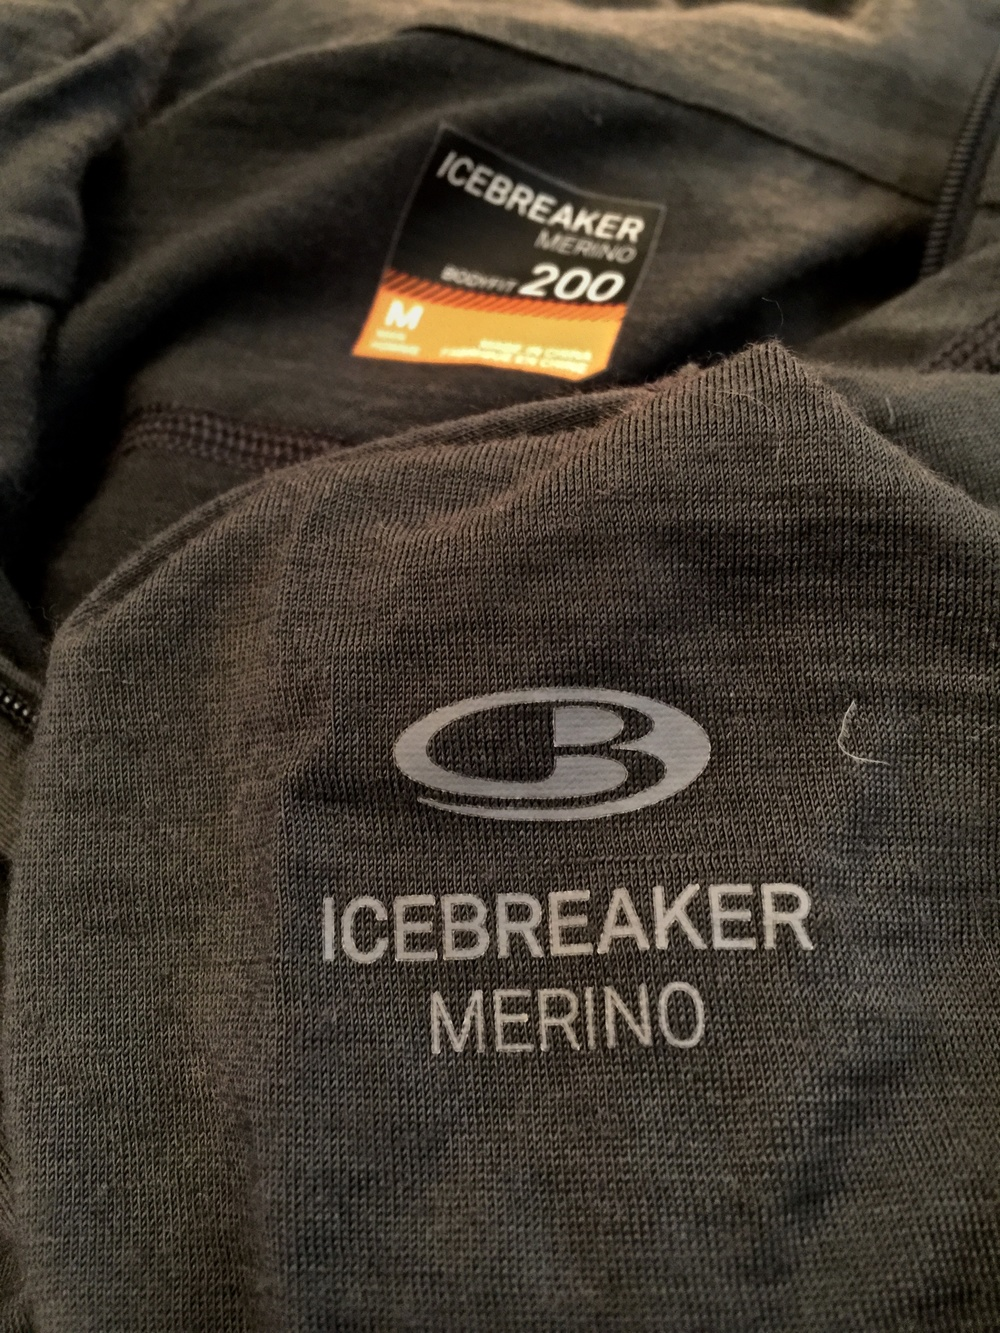 I've used this Icebreaker 200 weight Merino long sleeved half-zip on nearly all my hikes in 2015 and have loved it.  For me it's soft on my skin and I can wear it in the sun to protect my skin and on cool mornings.  100% Merino!